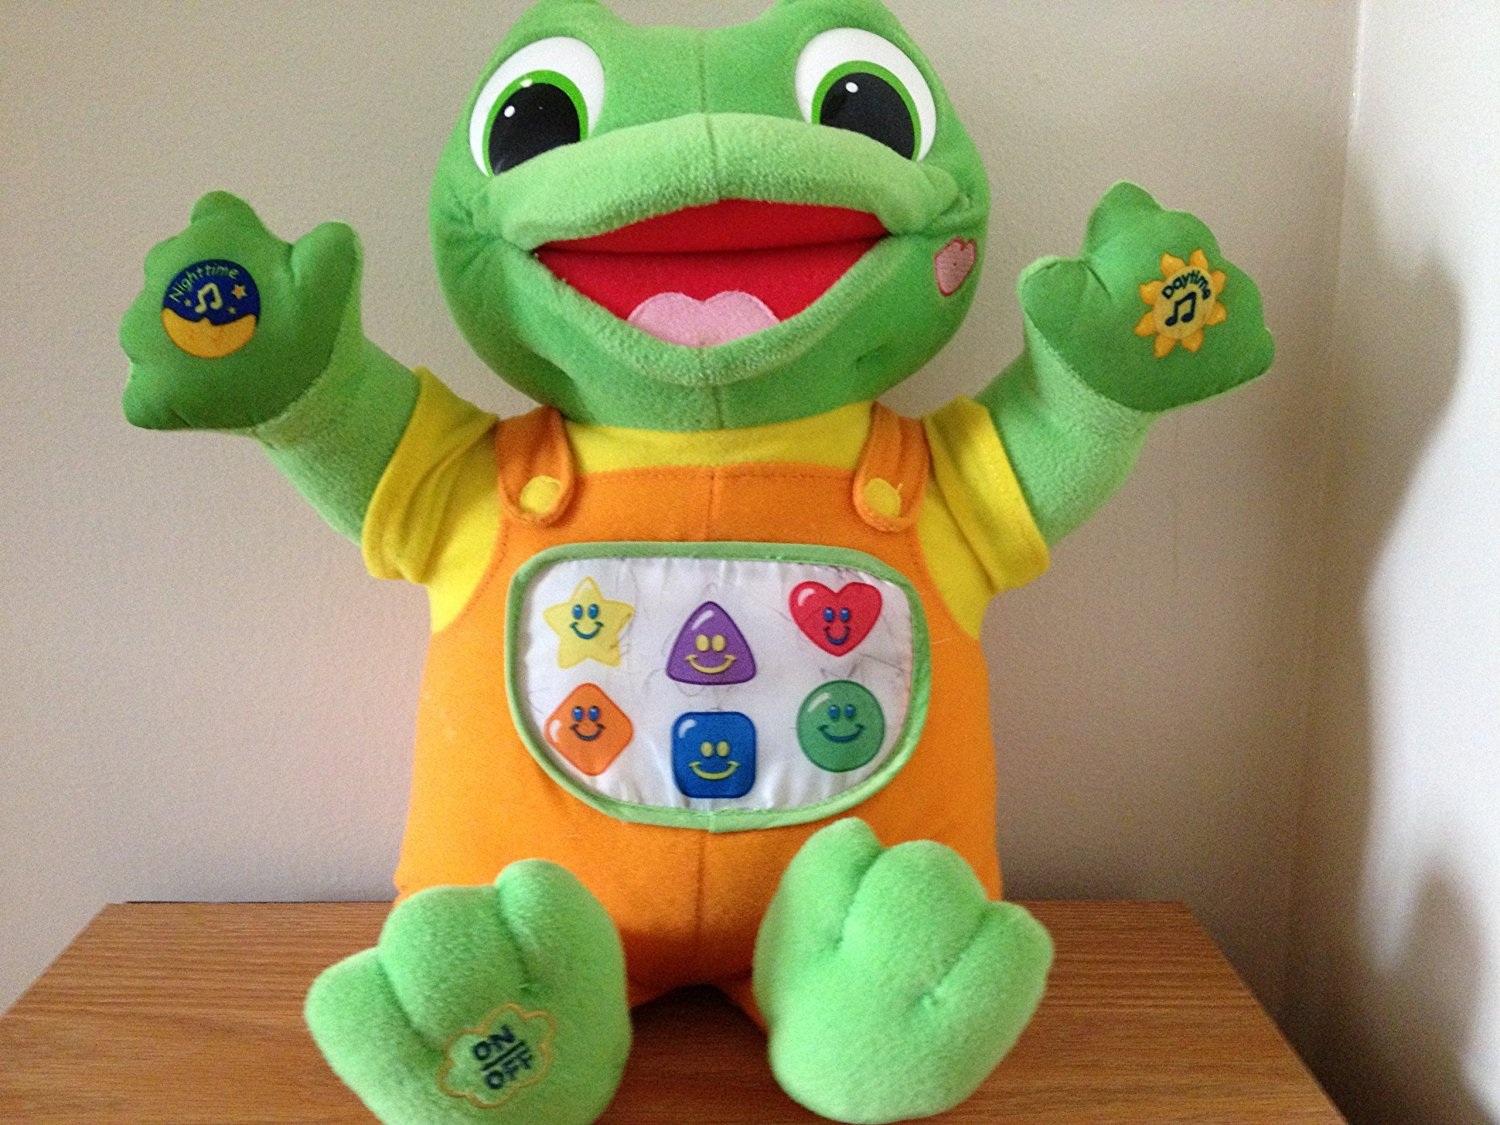 LeapFrog Hug & Learn Baby Tad Plush by